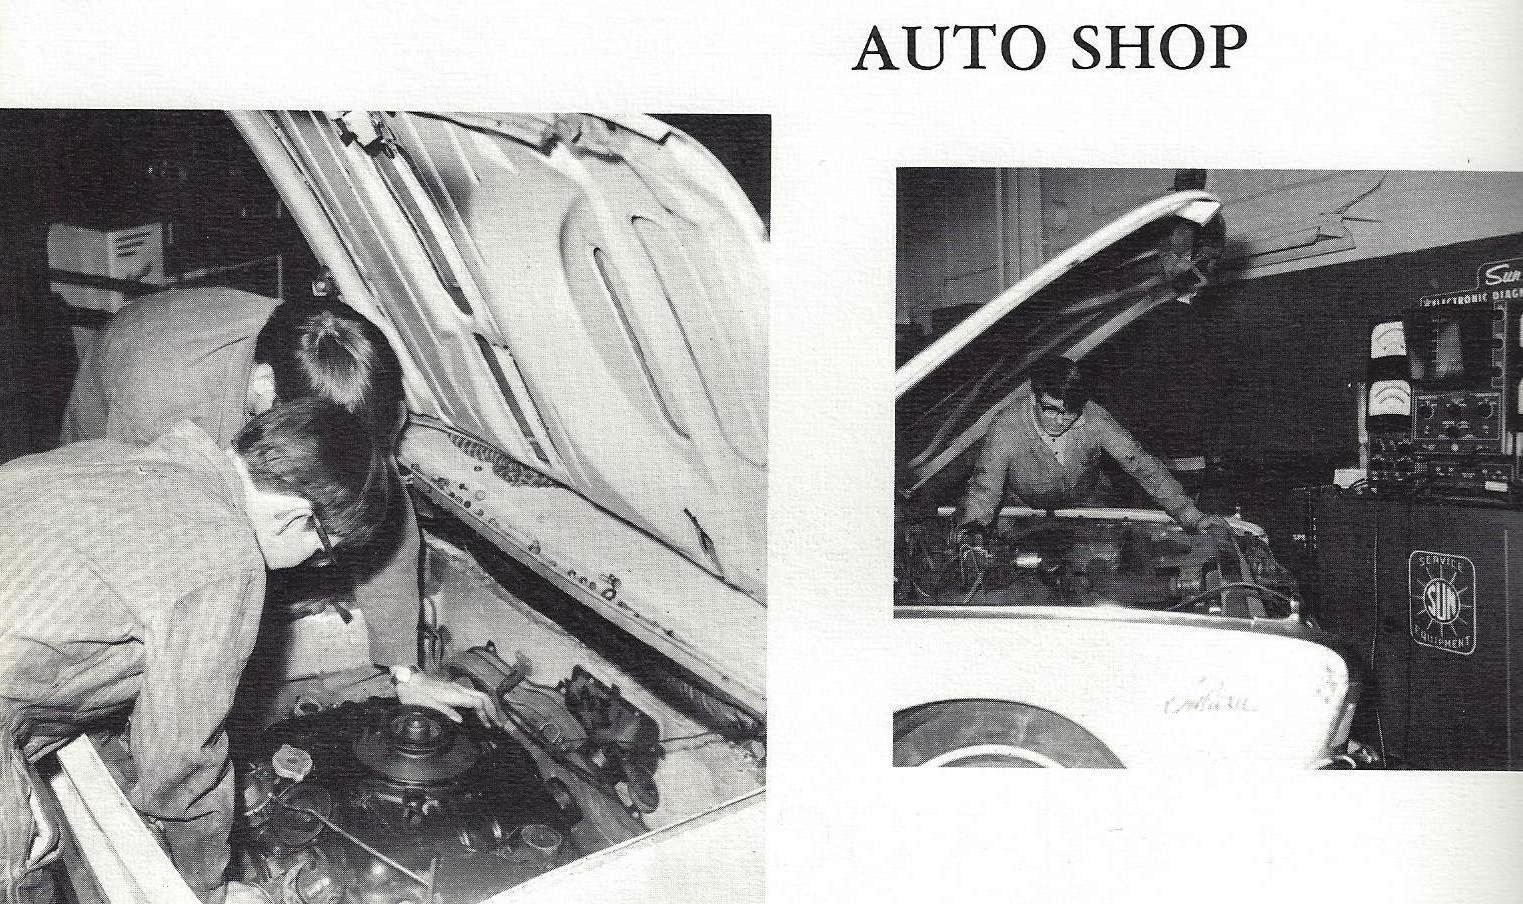 Timken Automotive Shop 1969